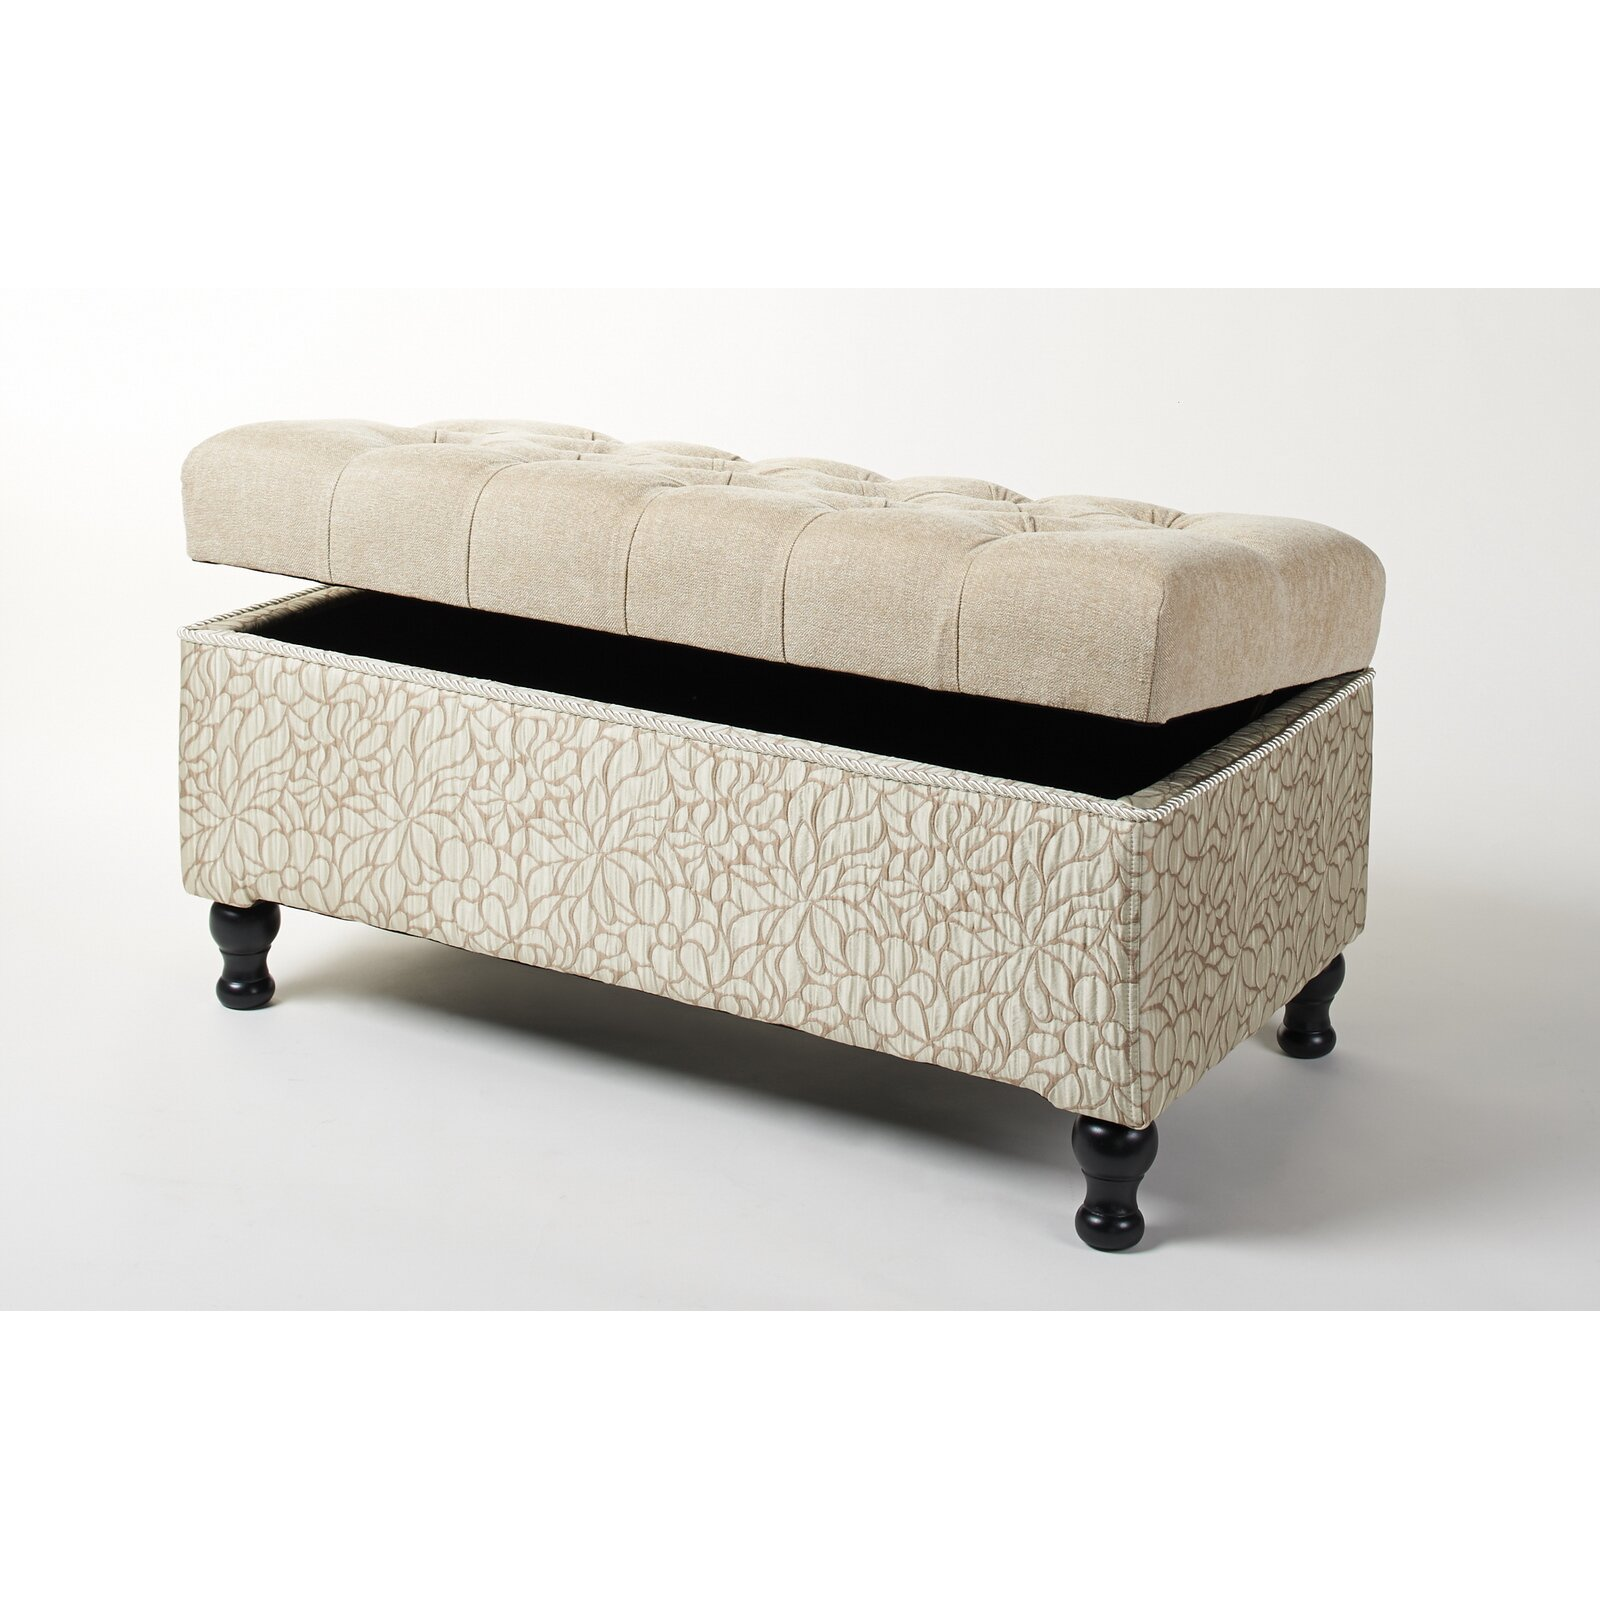 jennifer taylor naomi upholstered storage bedroom bench reviews wayfair. Black Bedroom Furniture Sets. Home Design Ideas